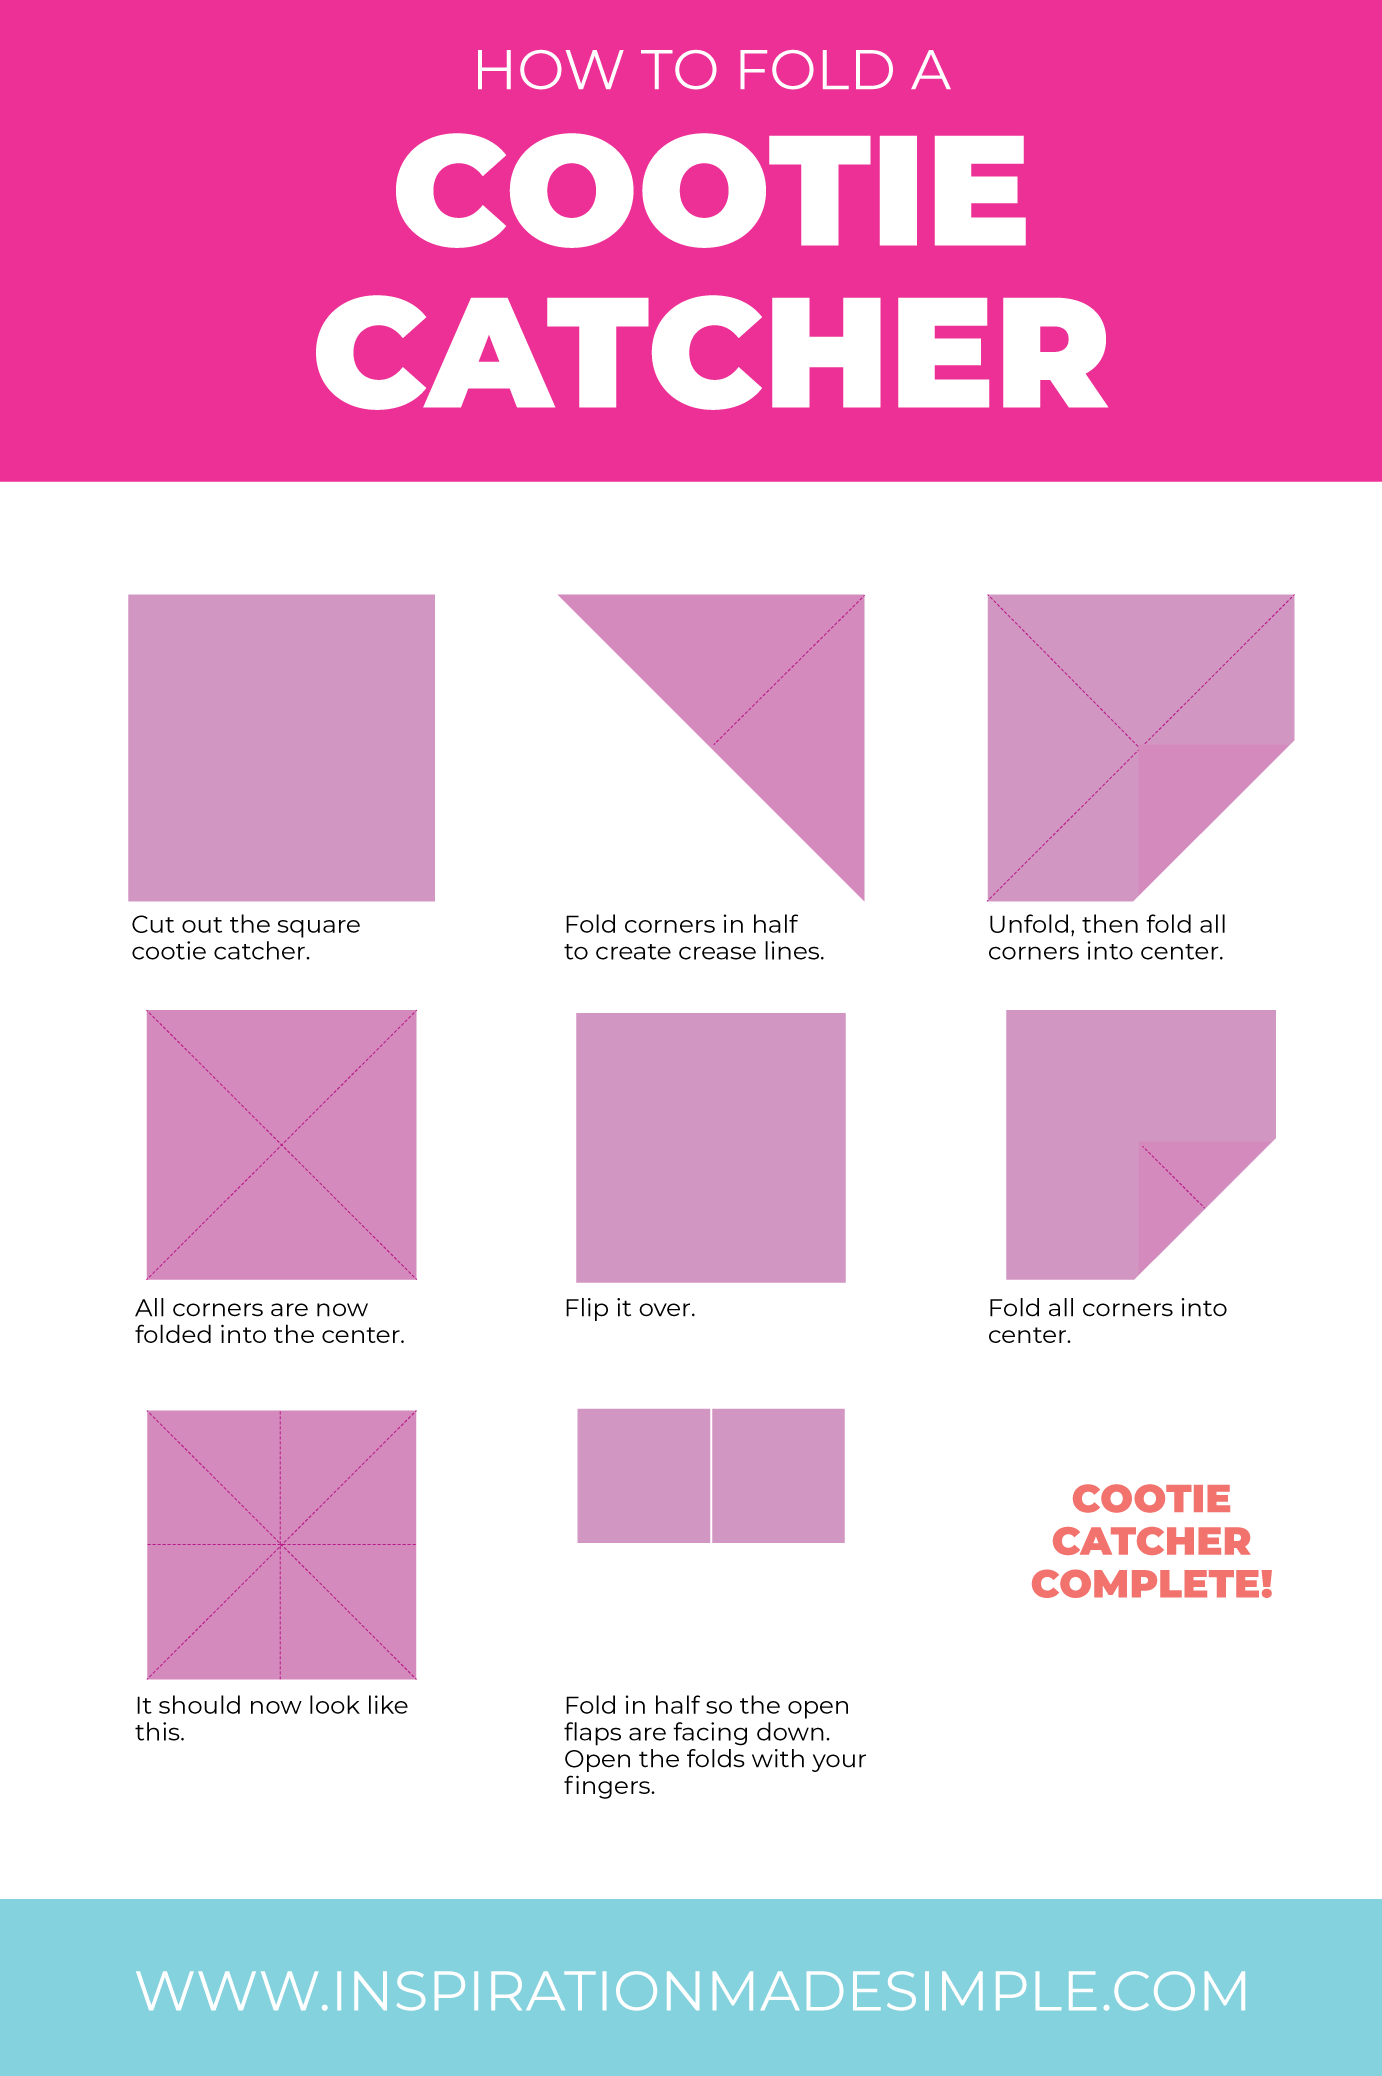 How to fold a cootie catcher